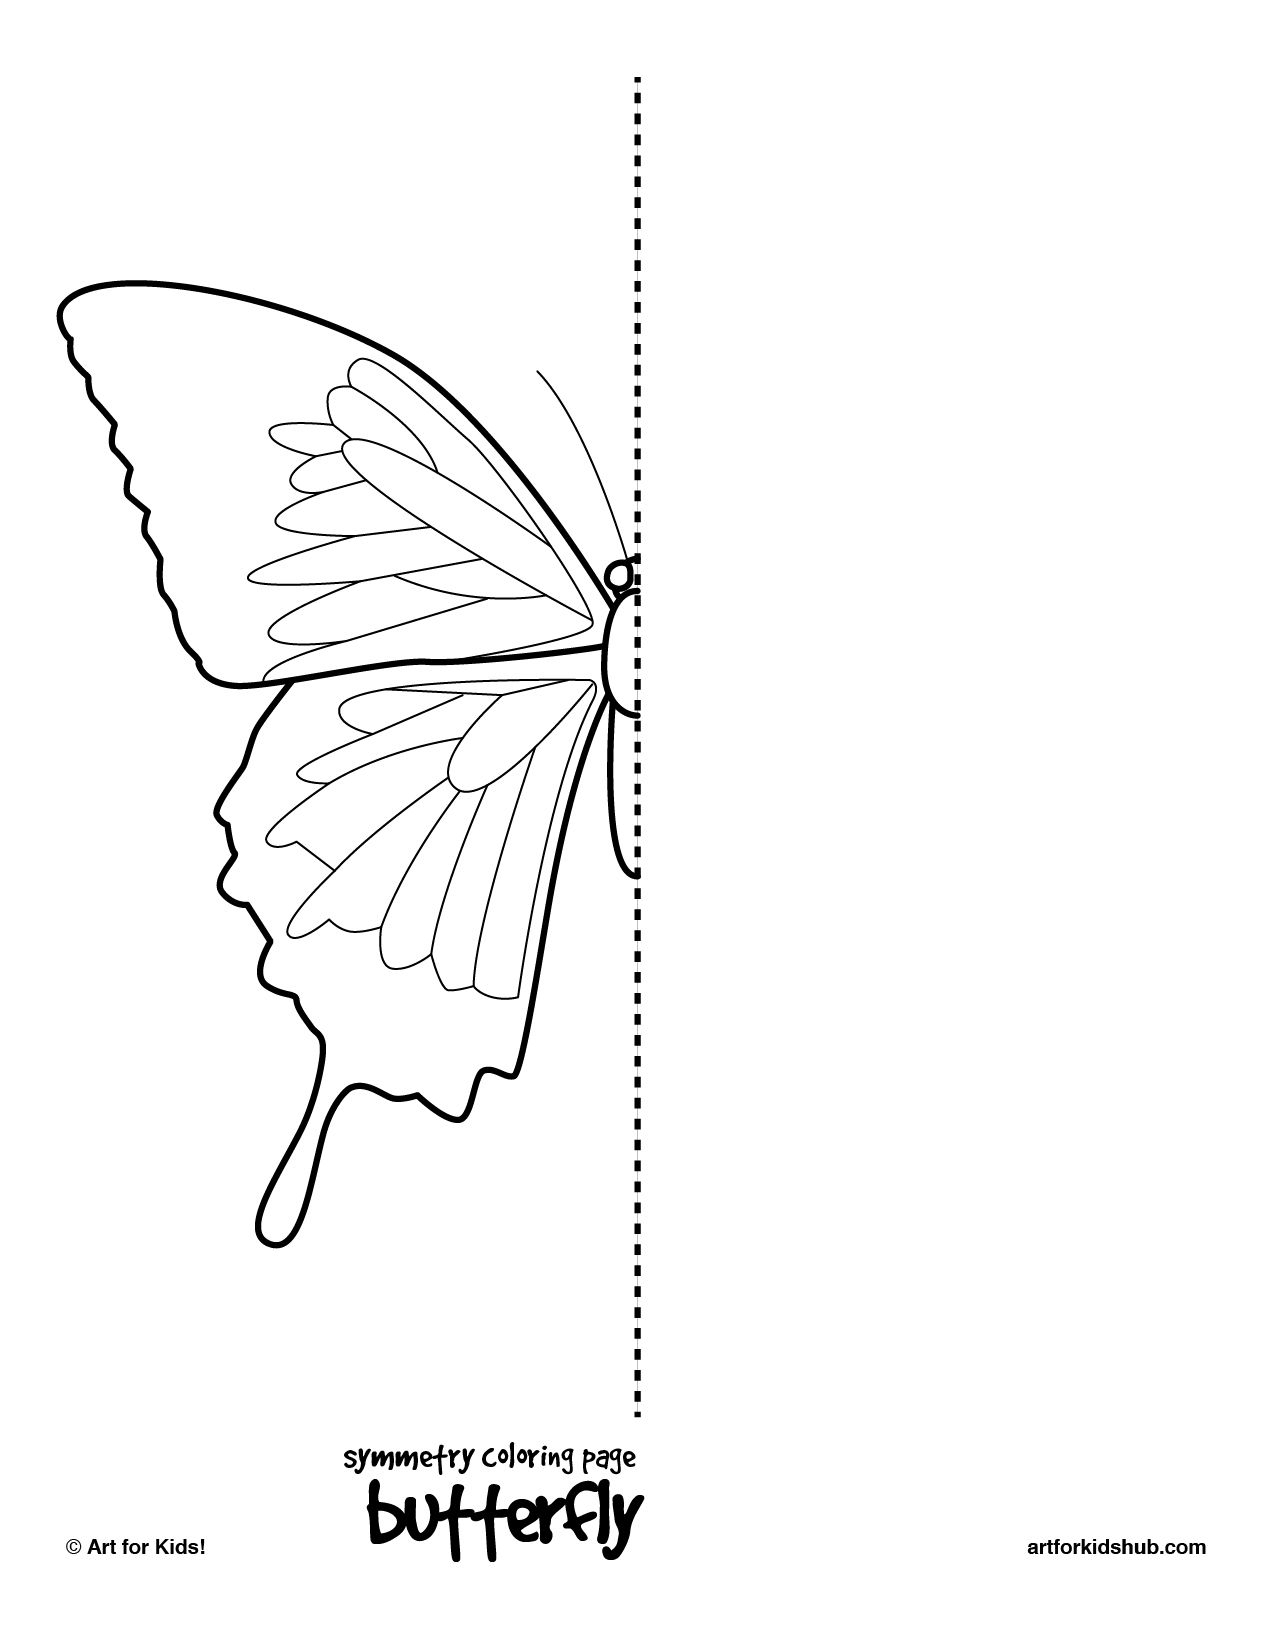 10 Free Coloring Pages - Bug Symmetry - Art For Kids Hub - | Art | Printable Symmetry Worksheets